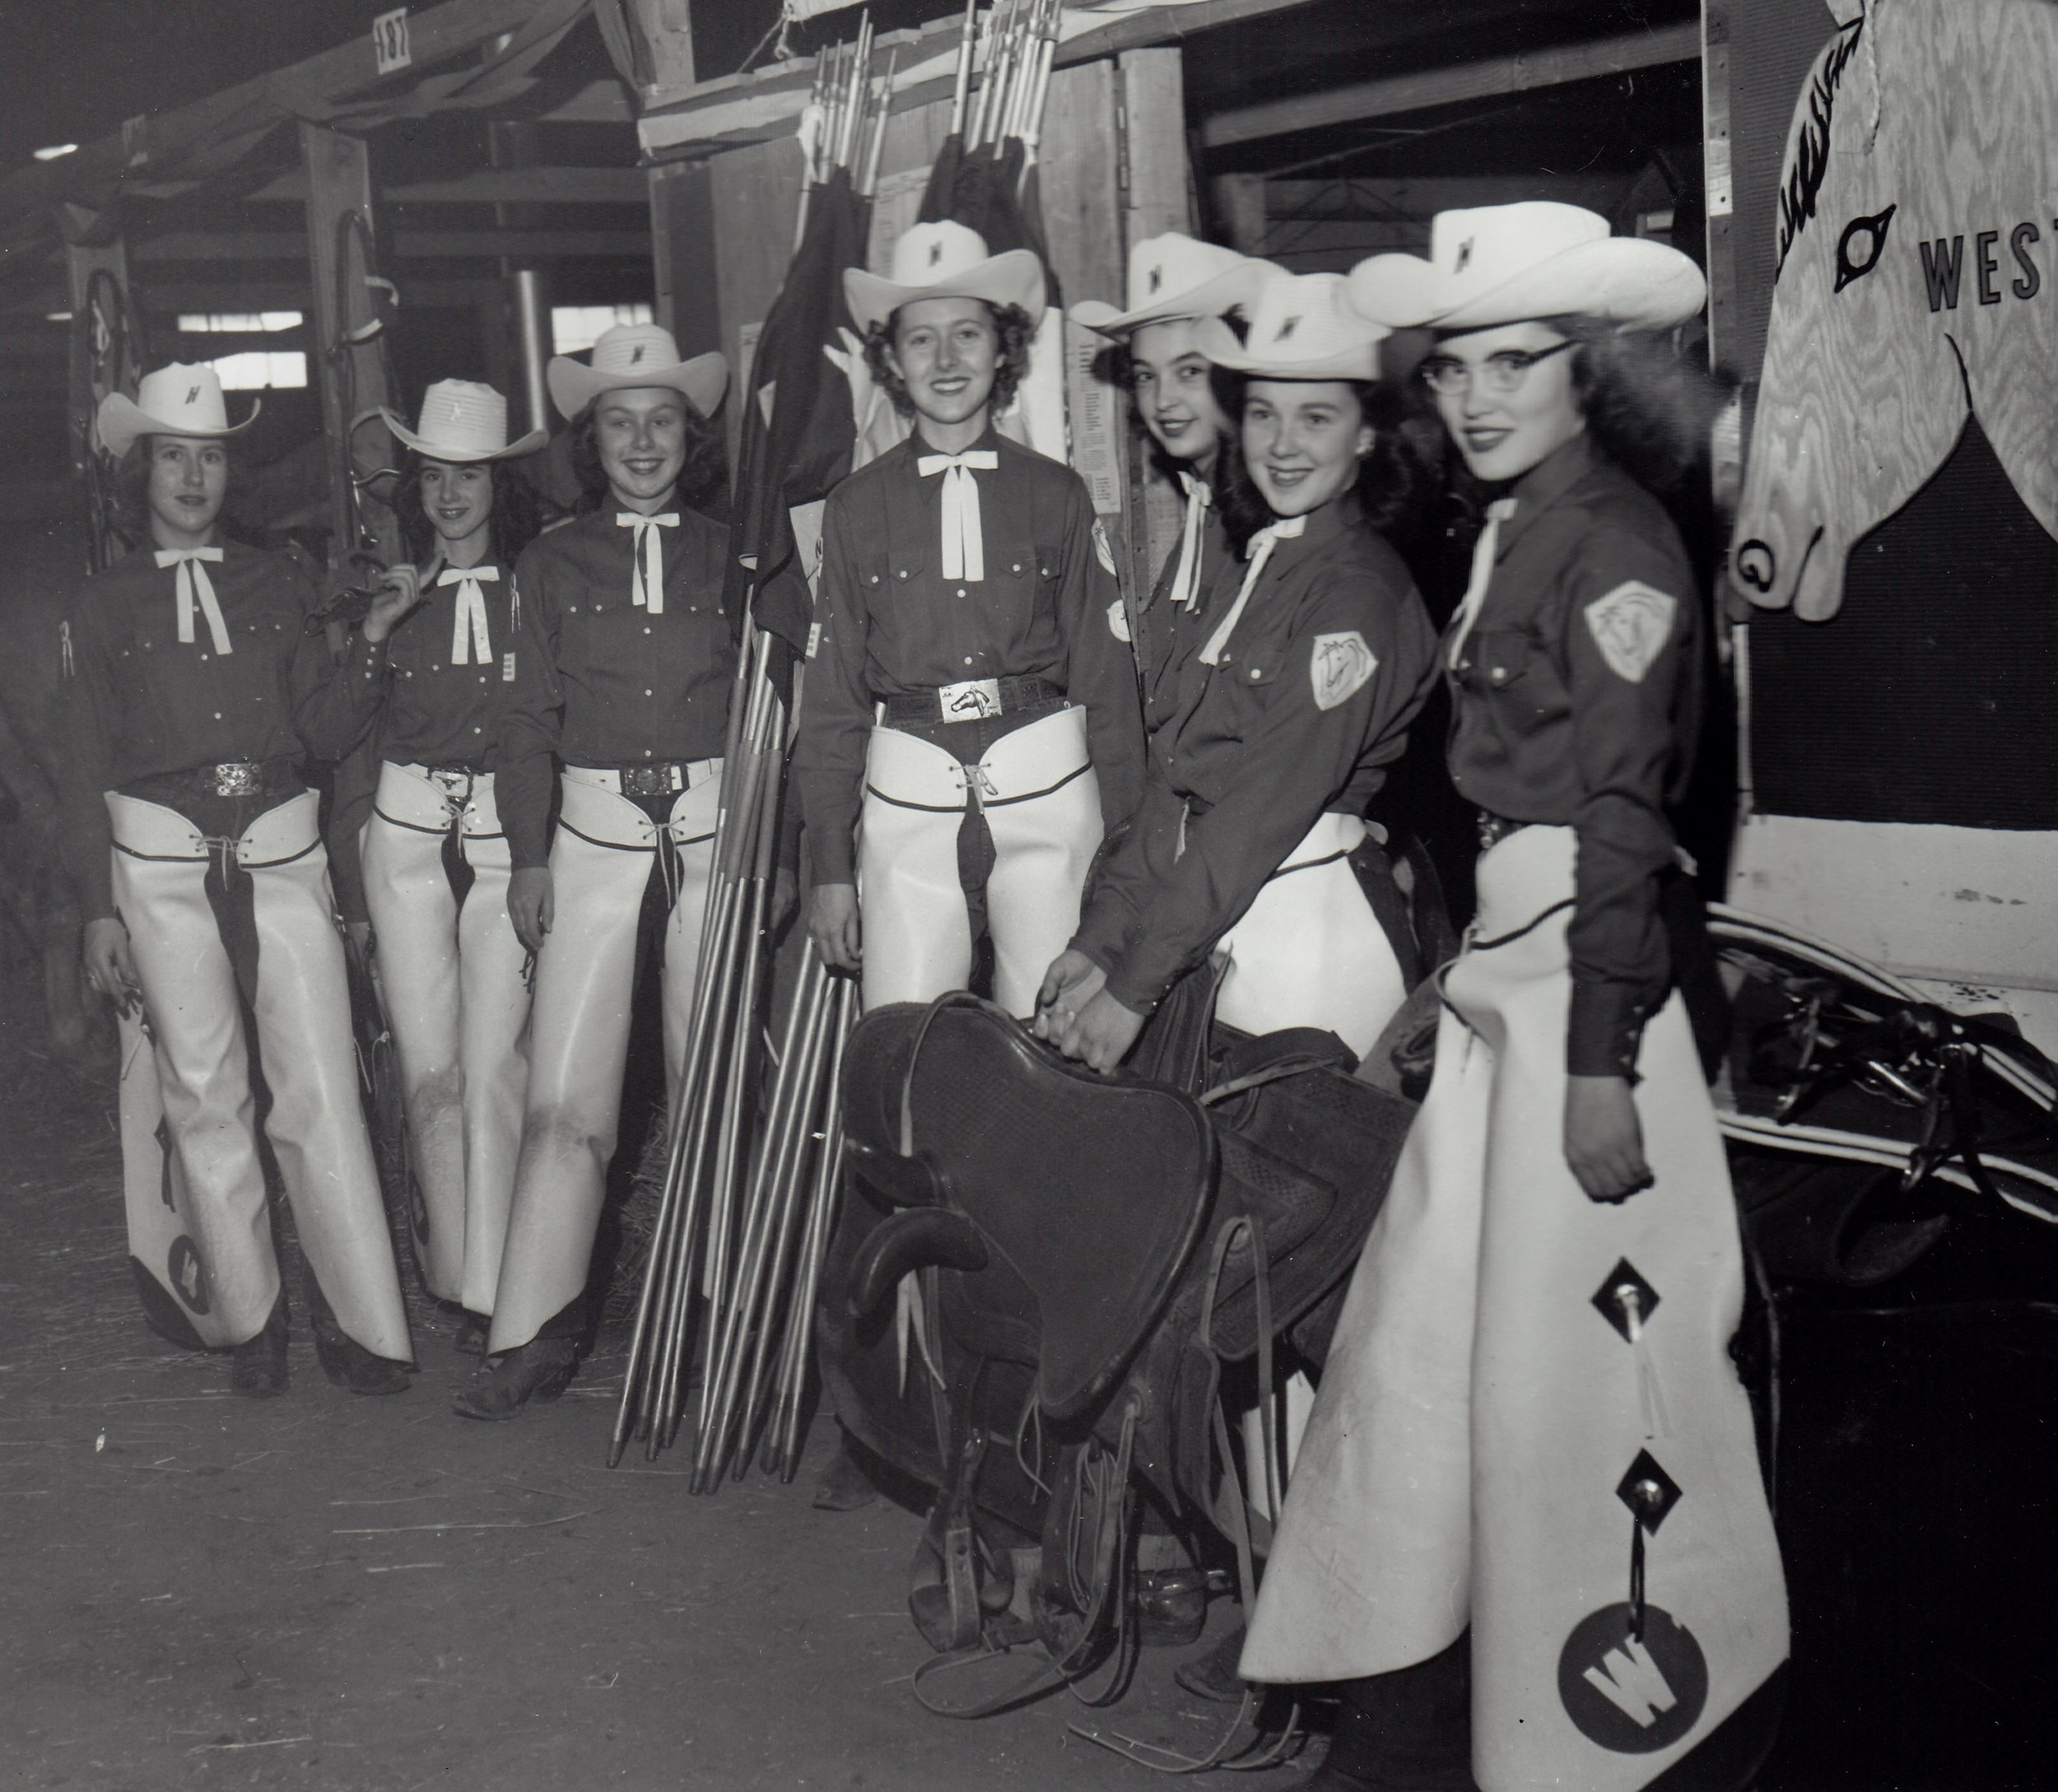 Westernaire riders prepare themselves in the barn at National Western Stock Show in 1956. Performing first in the rodeo's Grand Entry, many of them would perform again in the Golden Sidesaddle Review act. The Westernaires Cavalry team also performed in select rodeos of the 1956 National Western.